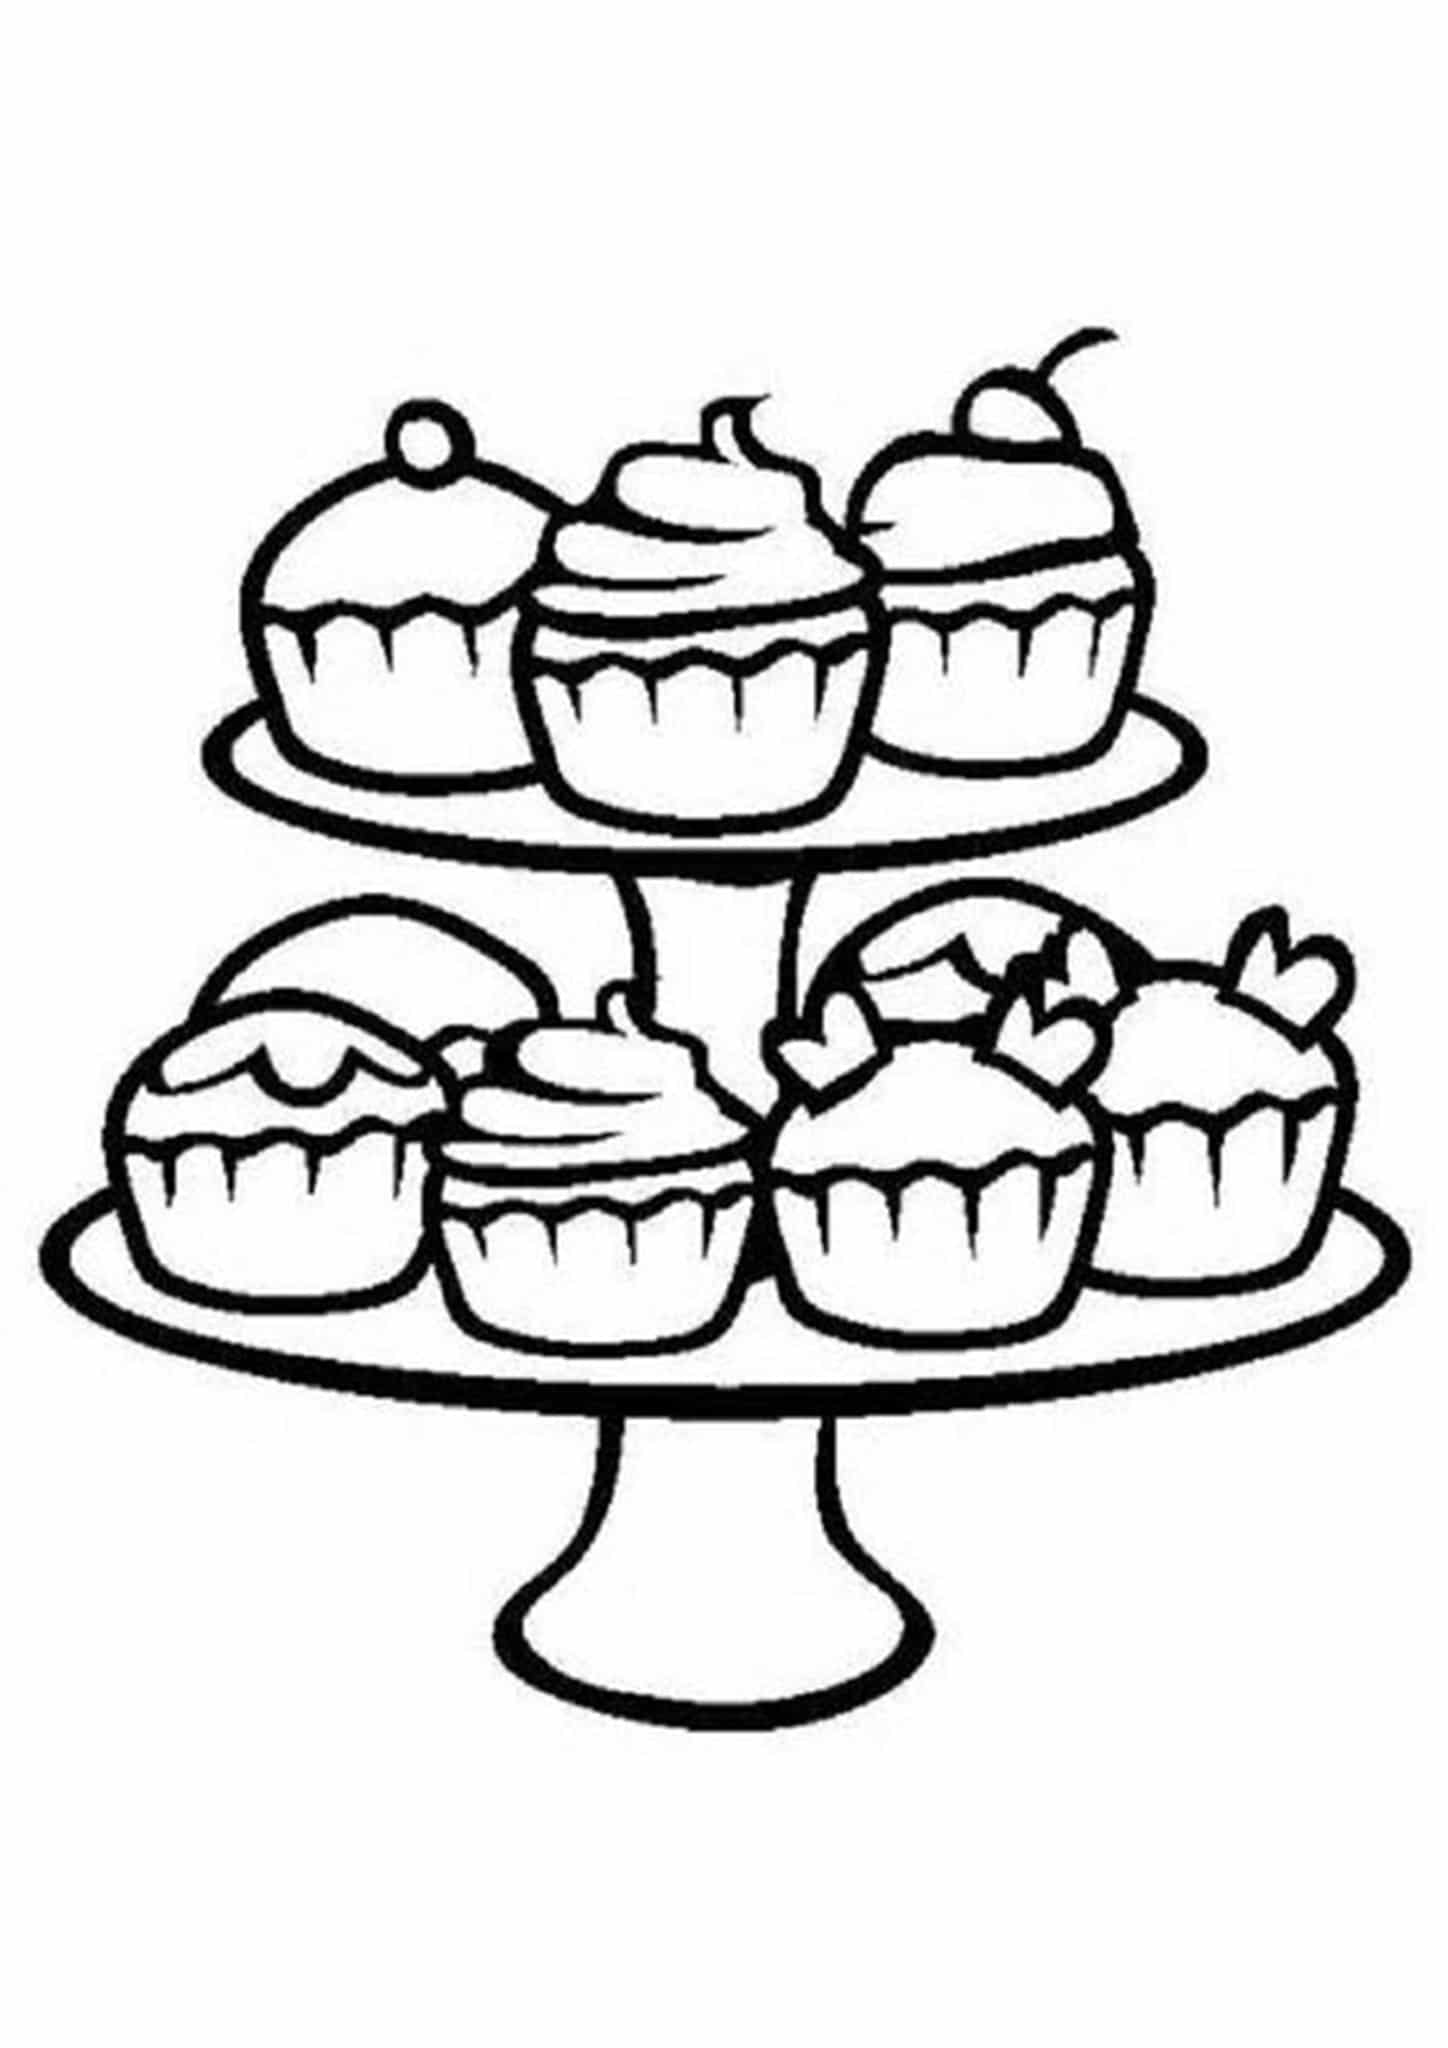 coloring pages cupcakes free printable cupcake coloring pages for kids cupcakes coloring pages